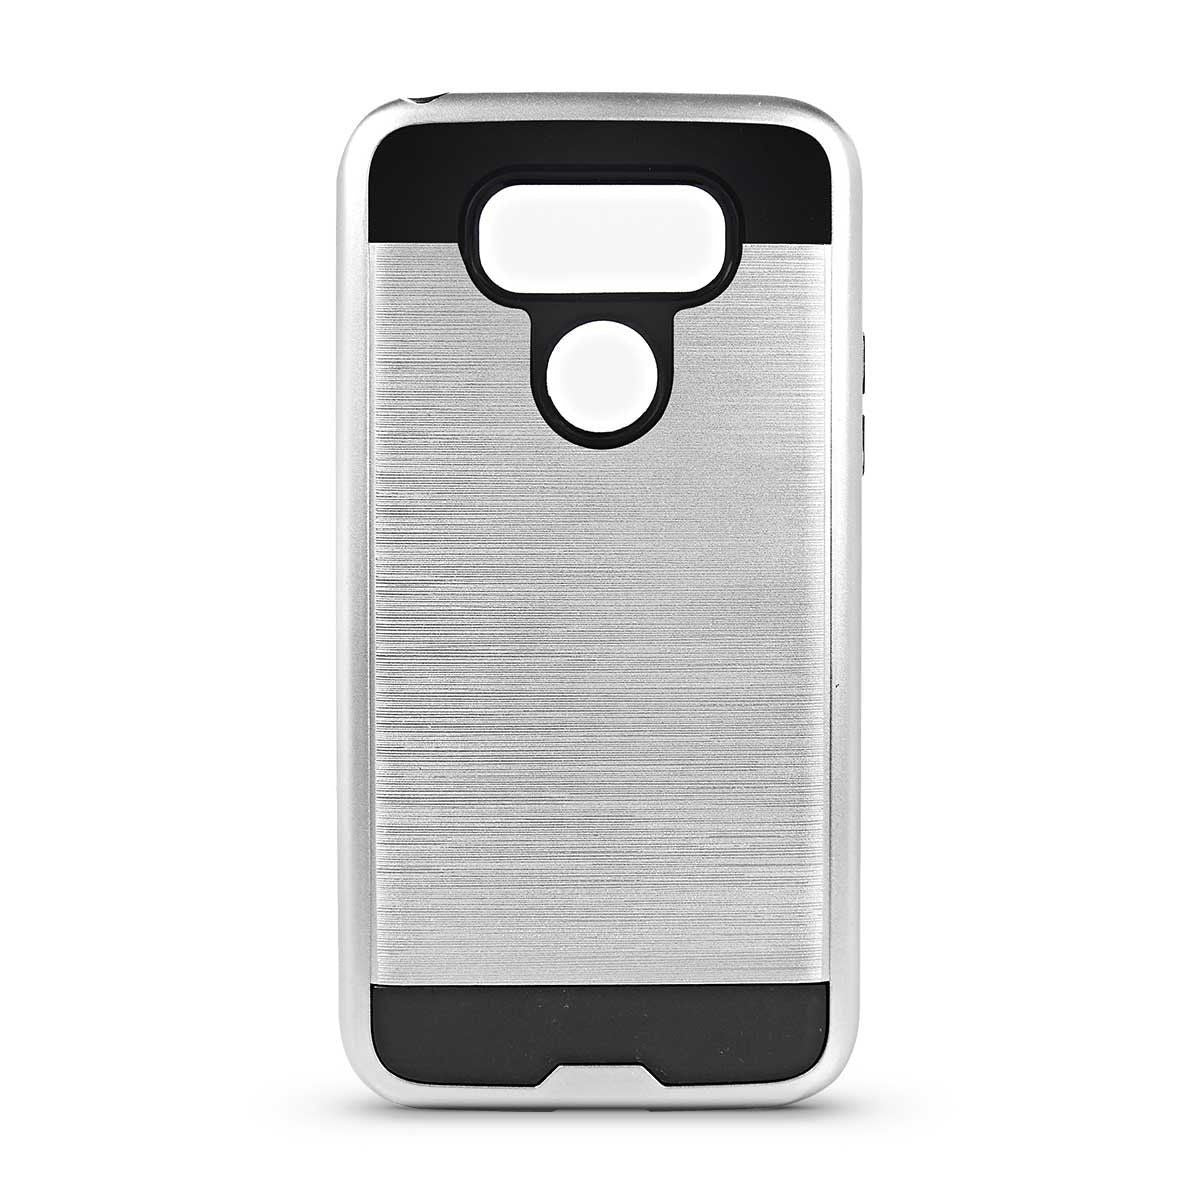 MD Hard Case for LG G6 - Silver